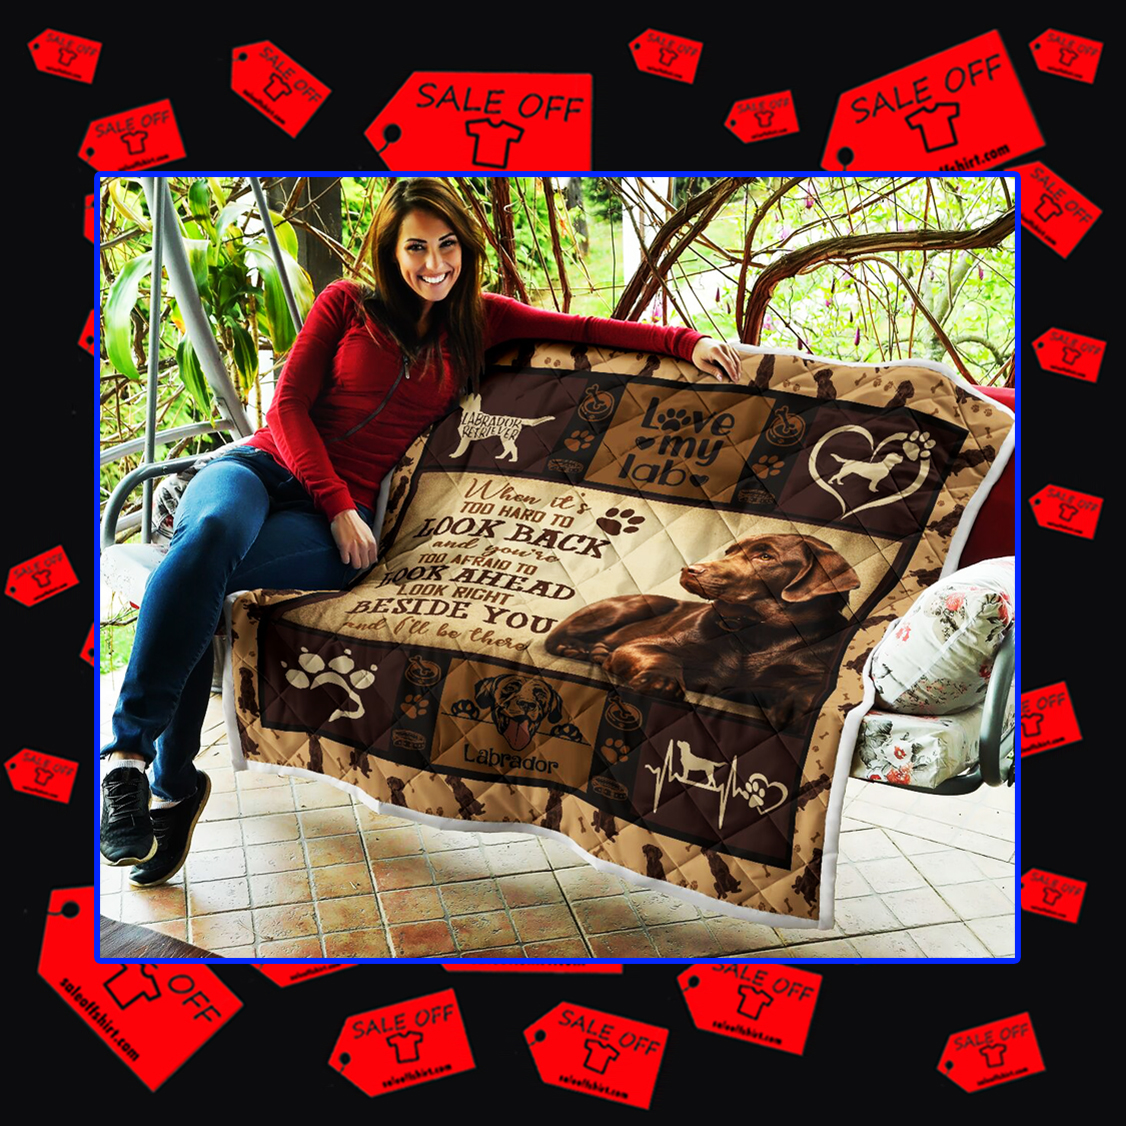 Chocolate Lab when it's too hard to look back quilt blanket - picture 2